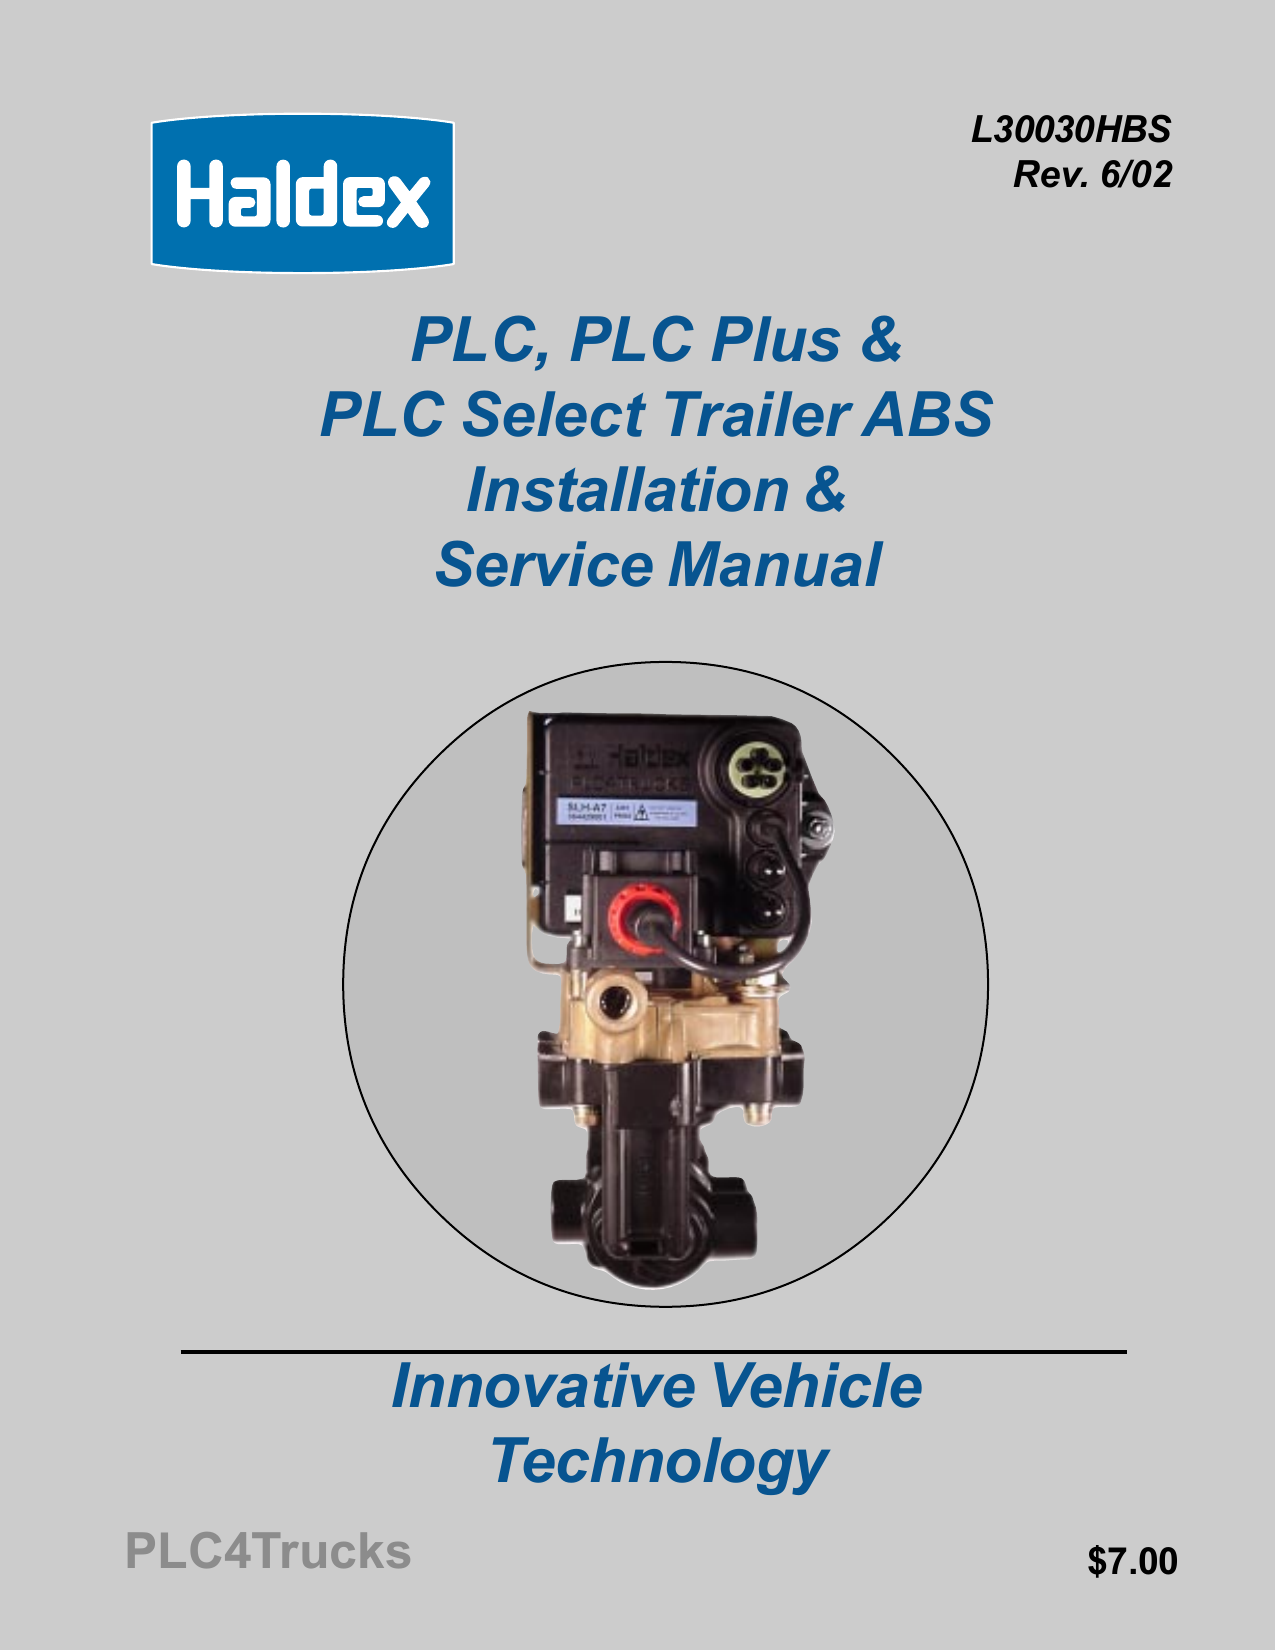 PLC, PLC Plus & PLC Select Trailer ABS Installation & Service Haldex S M Wiring Diagram on bmw diagrams, freightliner diagrams, cummins diagrams, ge diagrams, toyota diagrams, kohler diagrams, cessna diagrams, ford diagrams, husqvarna diagrams,